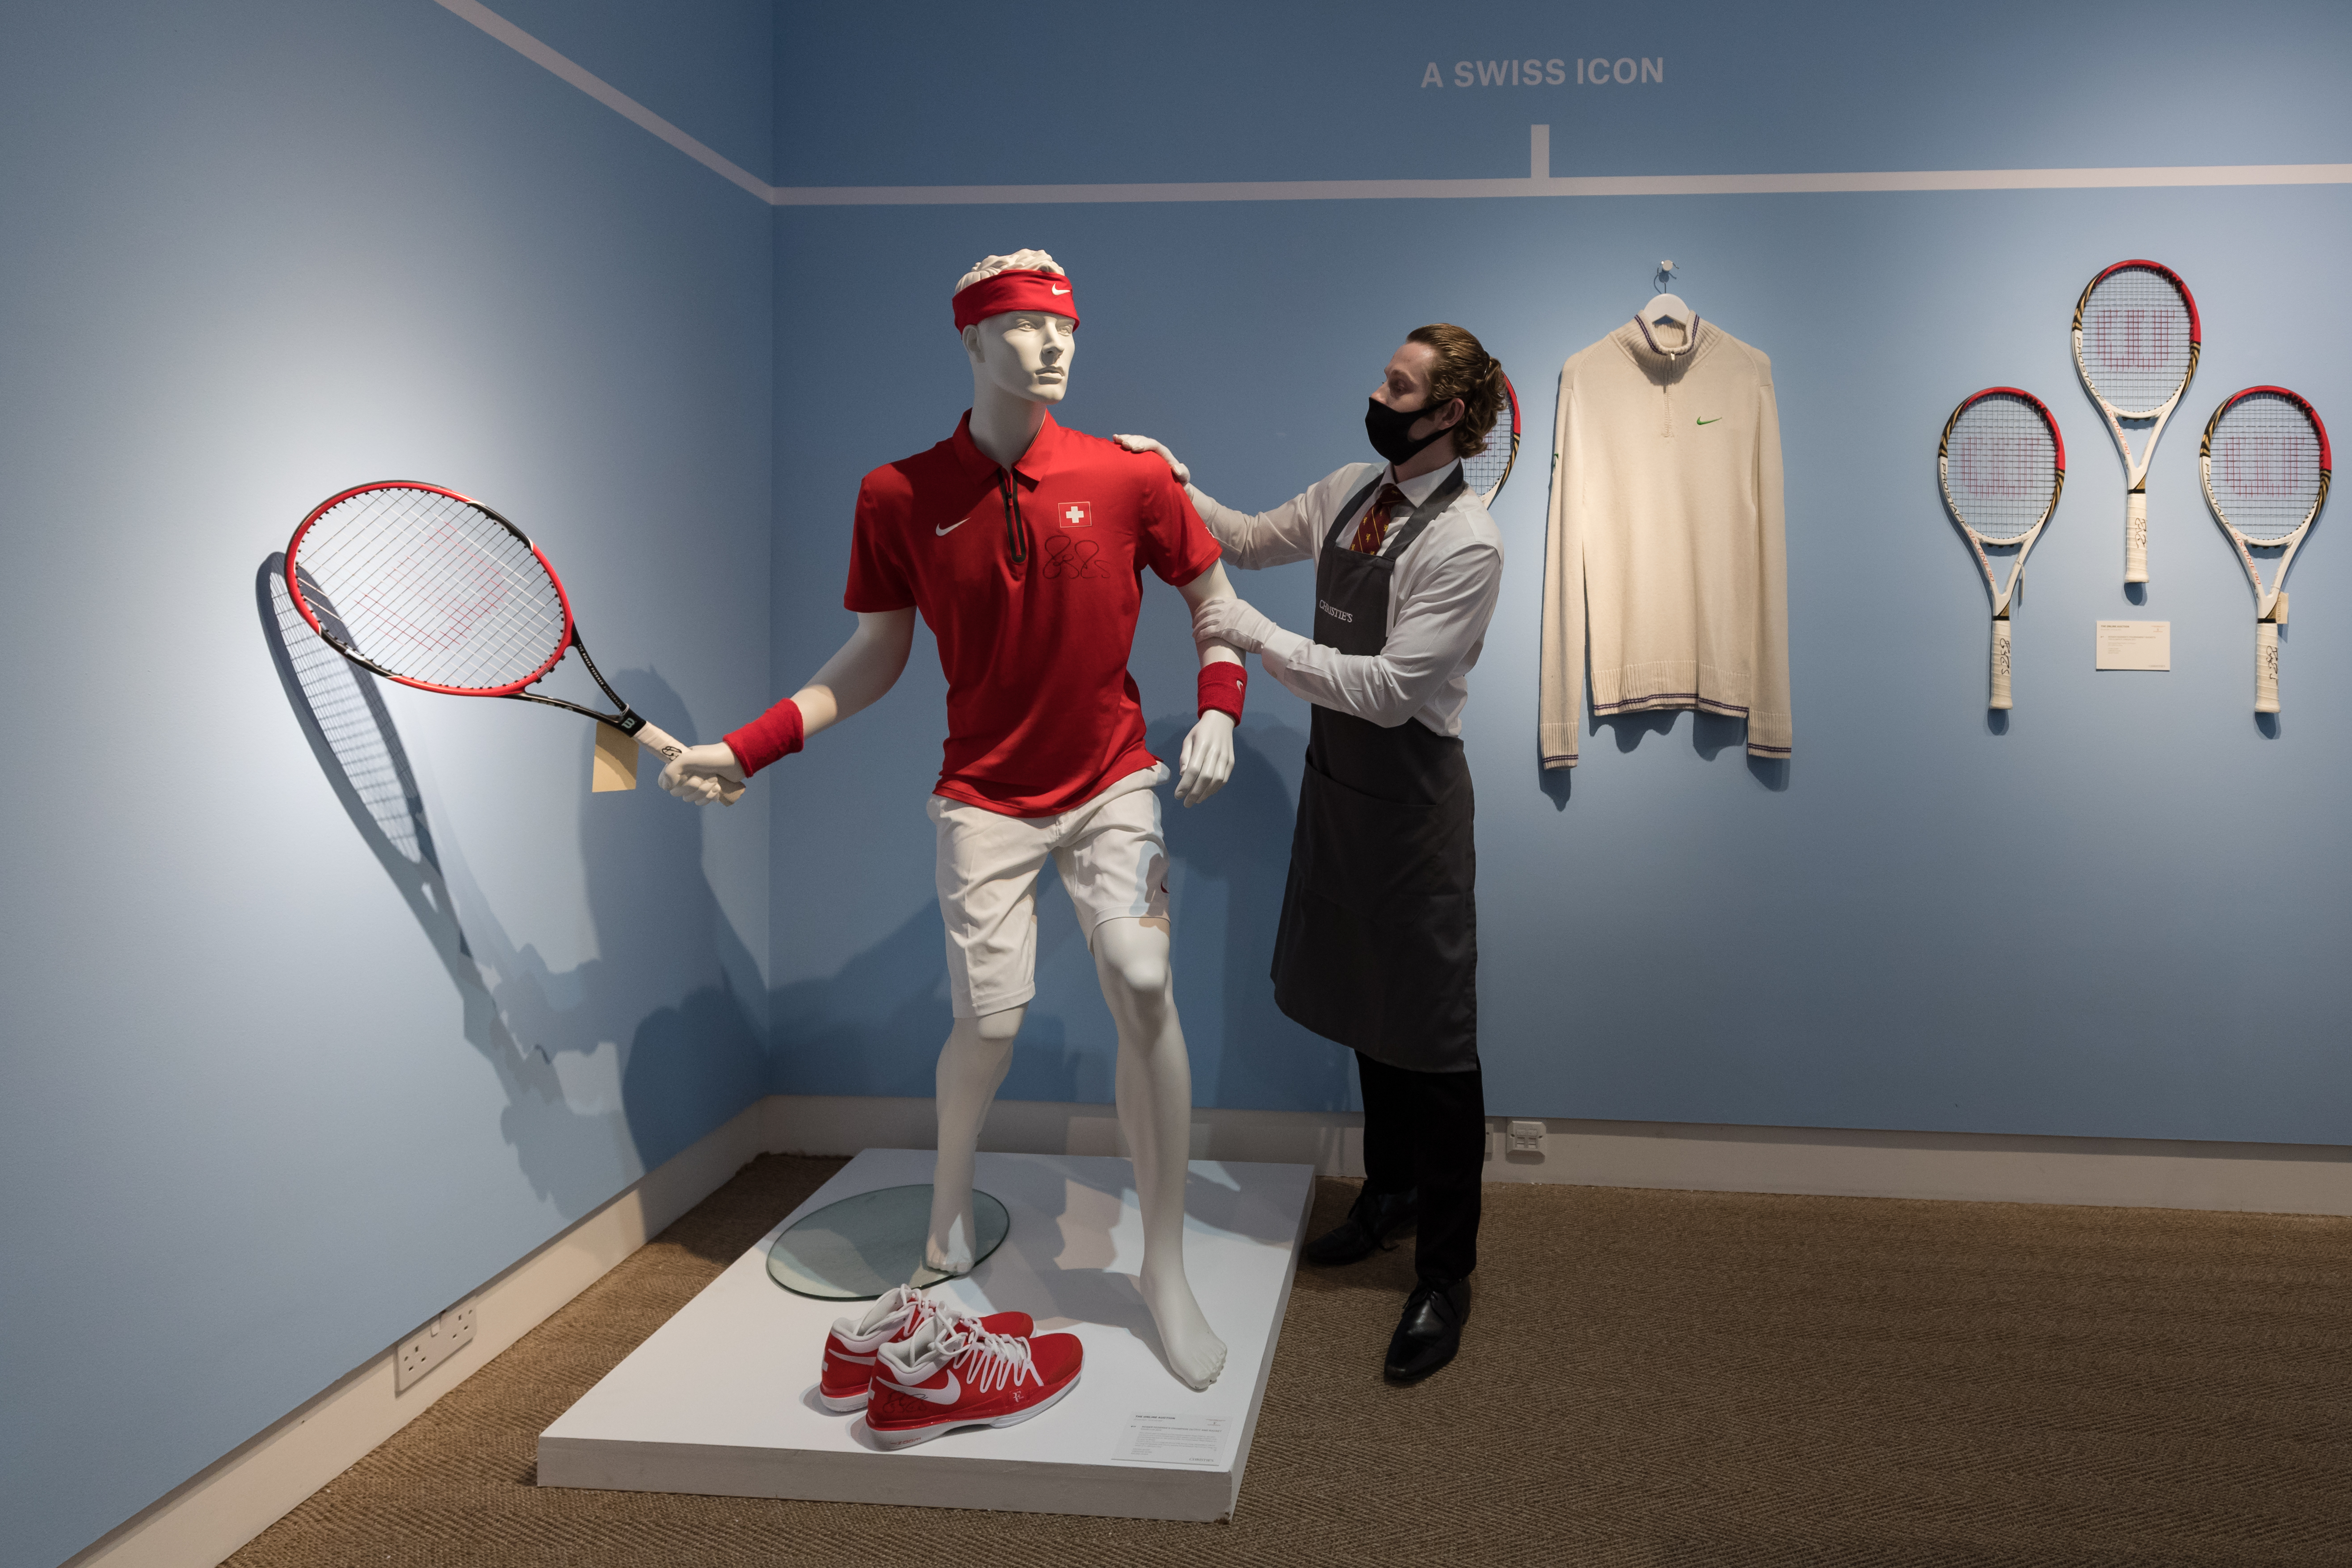 <p>LONDON, UNITED KINGDOM - JUNE 21: A staff member stands next to Roger Federer's signed champion outfit and racket from 2014 Davis Cup (est. £20,000-30,000) during a photo call for 'The Roger Federer Collection: Sold to Benefit The RF Foundation' Evening and Online Sale at Christie's auction house in London, United Kingdom on June 21, 2021. The collection celebrates Federerâs historic achievements, with sporting memorabilia from his Grand Slam victories offered for auction in London on 23 June together with an online sale (23 June â 13 &amp; 14 July), which chronicles his incredible career from the early 2000s right through to 2021. (Photo by Wiktor Szymanowicz/Anadolu Agency via Getty Images)</p>